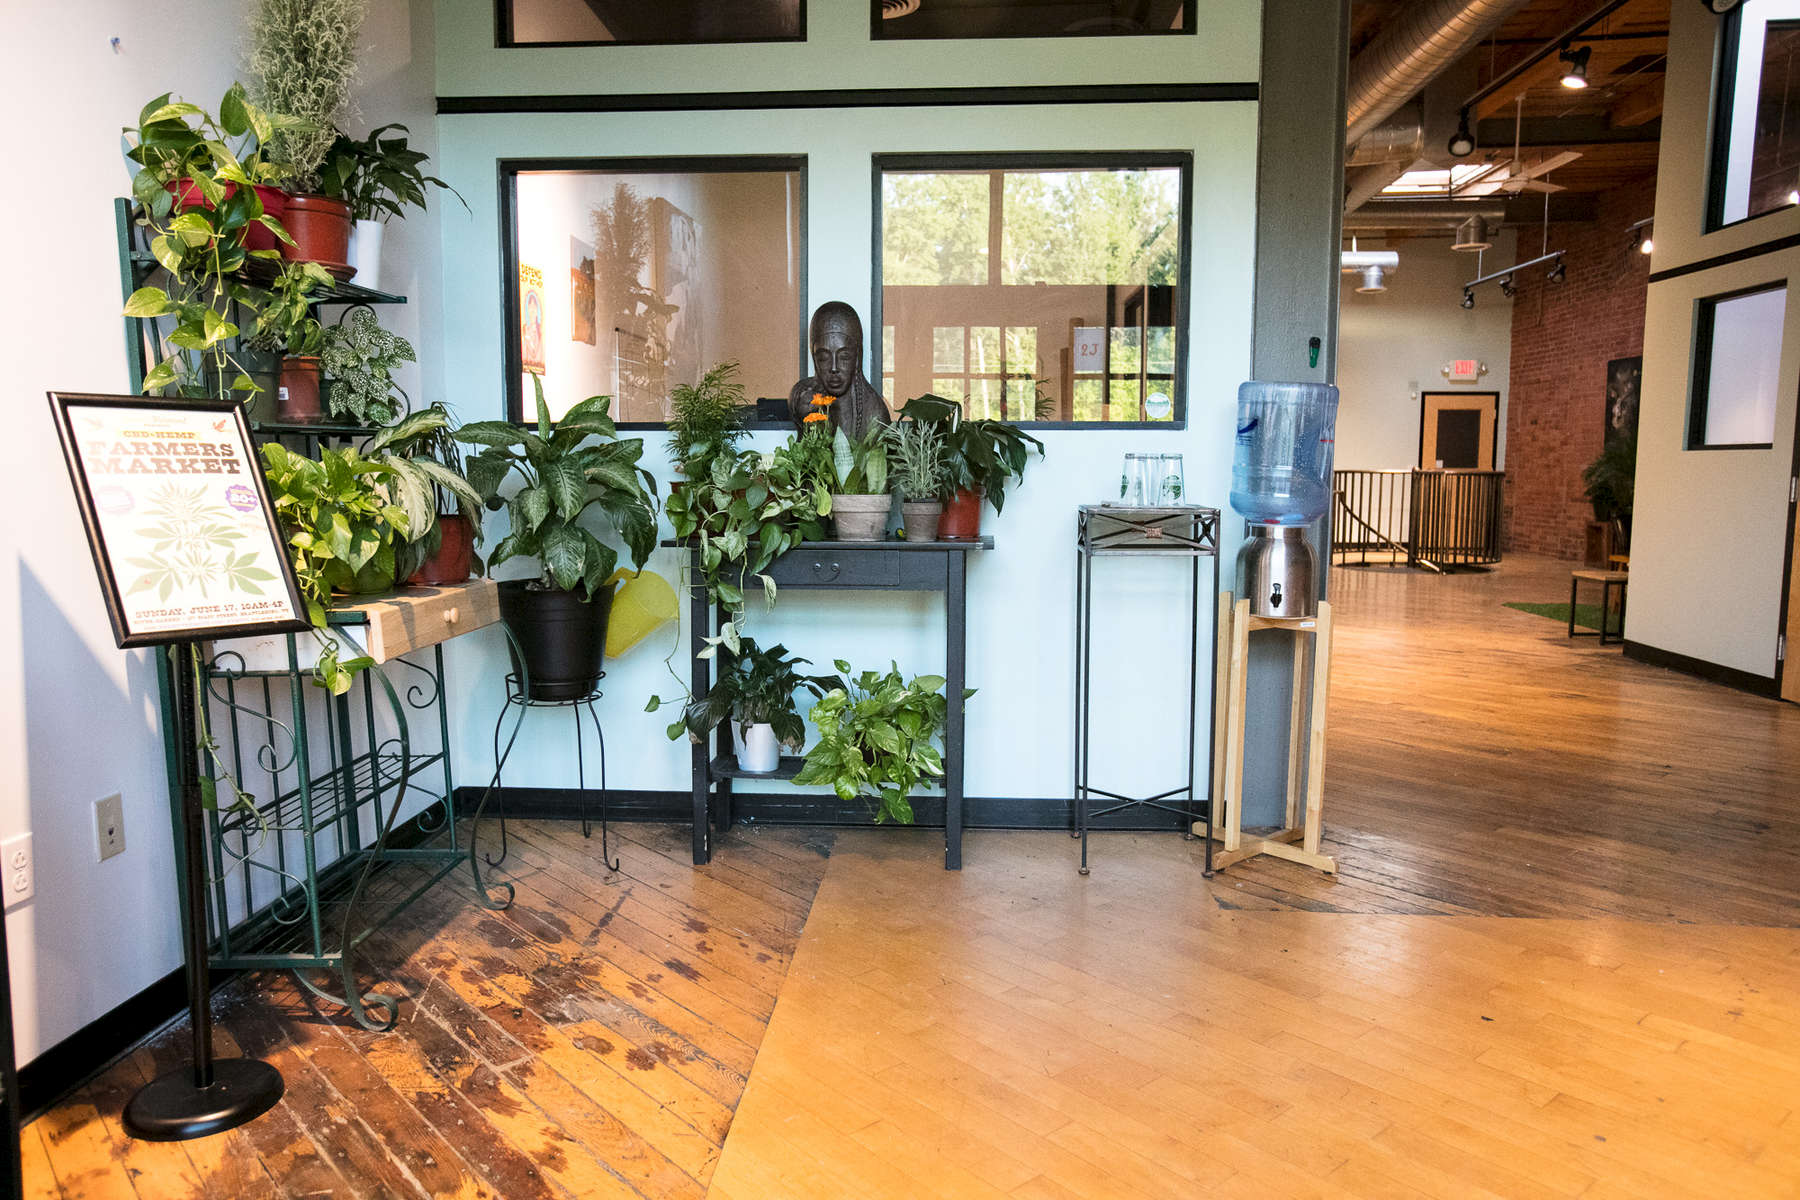 Entryway at 208 Flynn Suite 2J in Burlington Vermont by JAM Creative, a venue space for rentals, parties, workshops, networking and more.